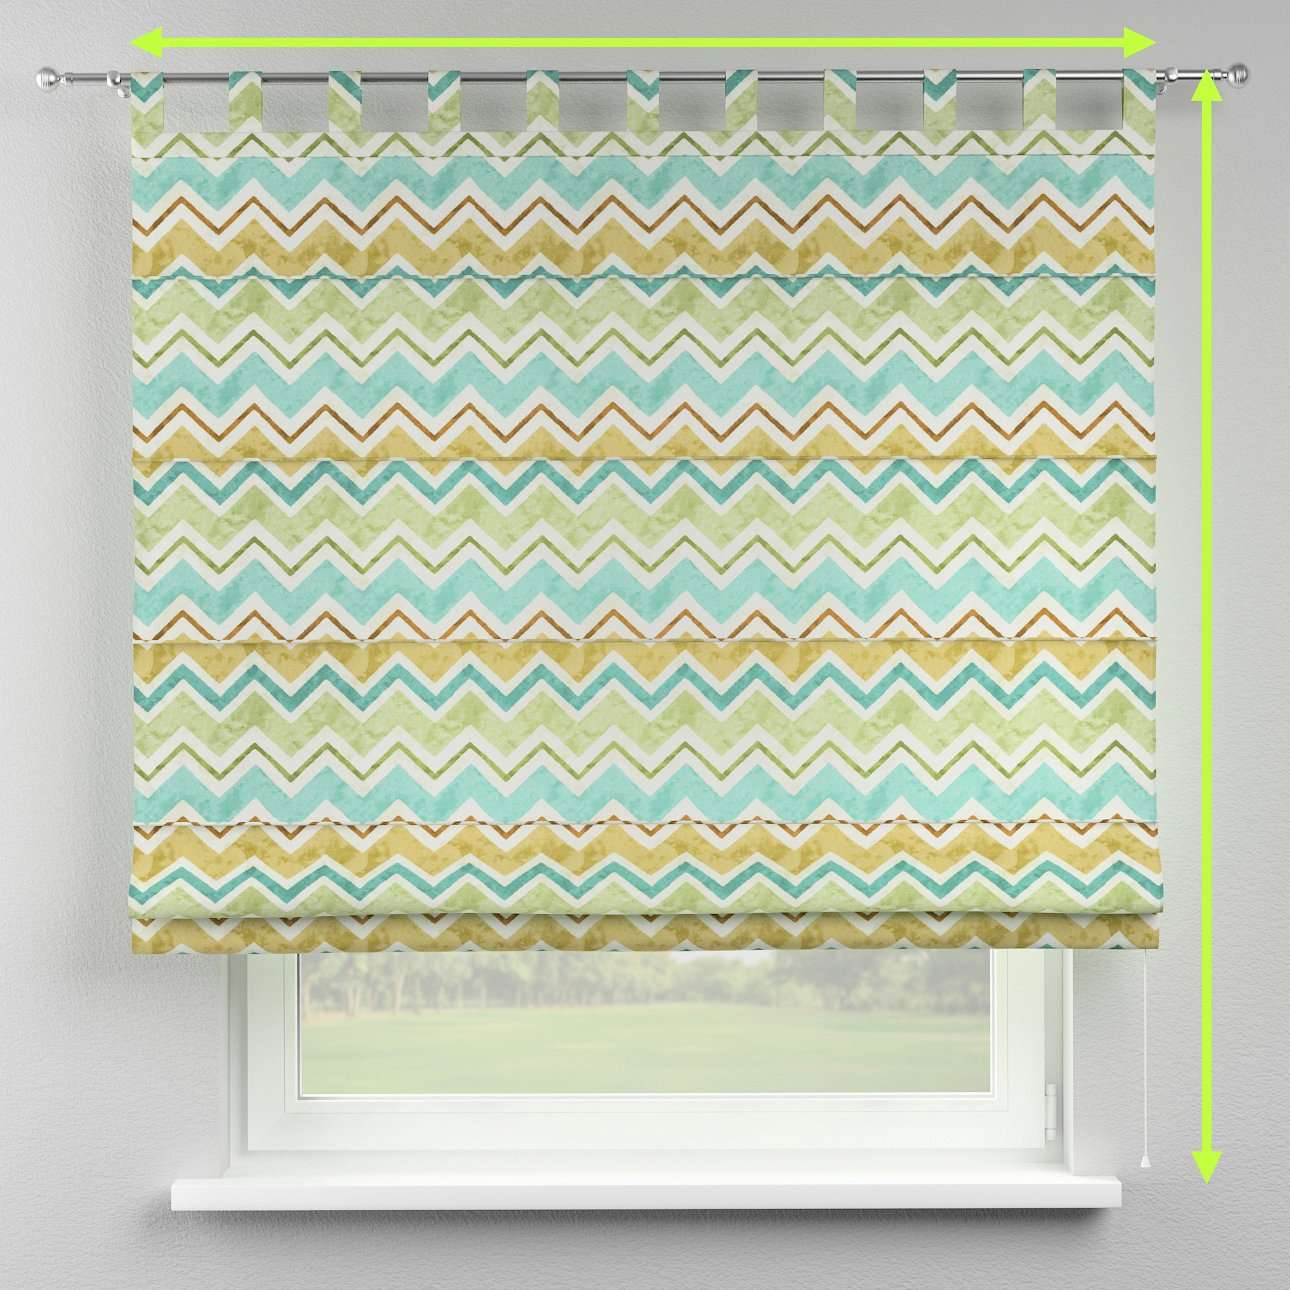 Verona tab top roman blind in collection Acapulco, fabric: 141-41